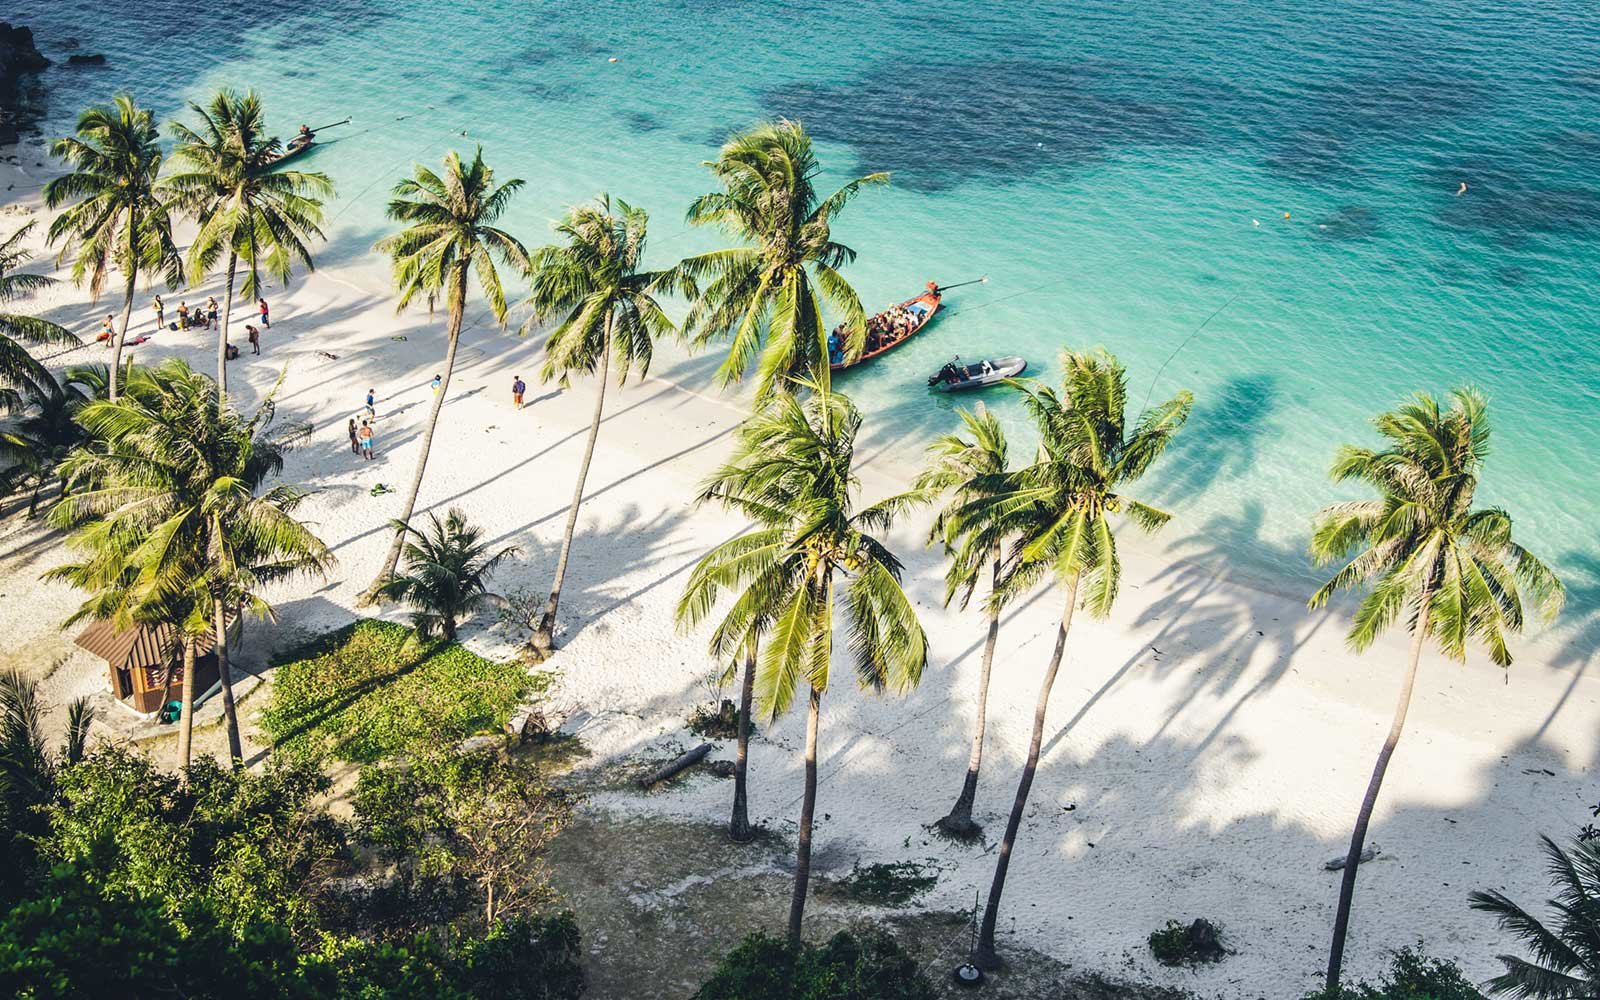 The 15 Best Places to Travel in April | Travel + Leisure